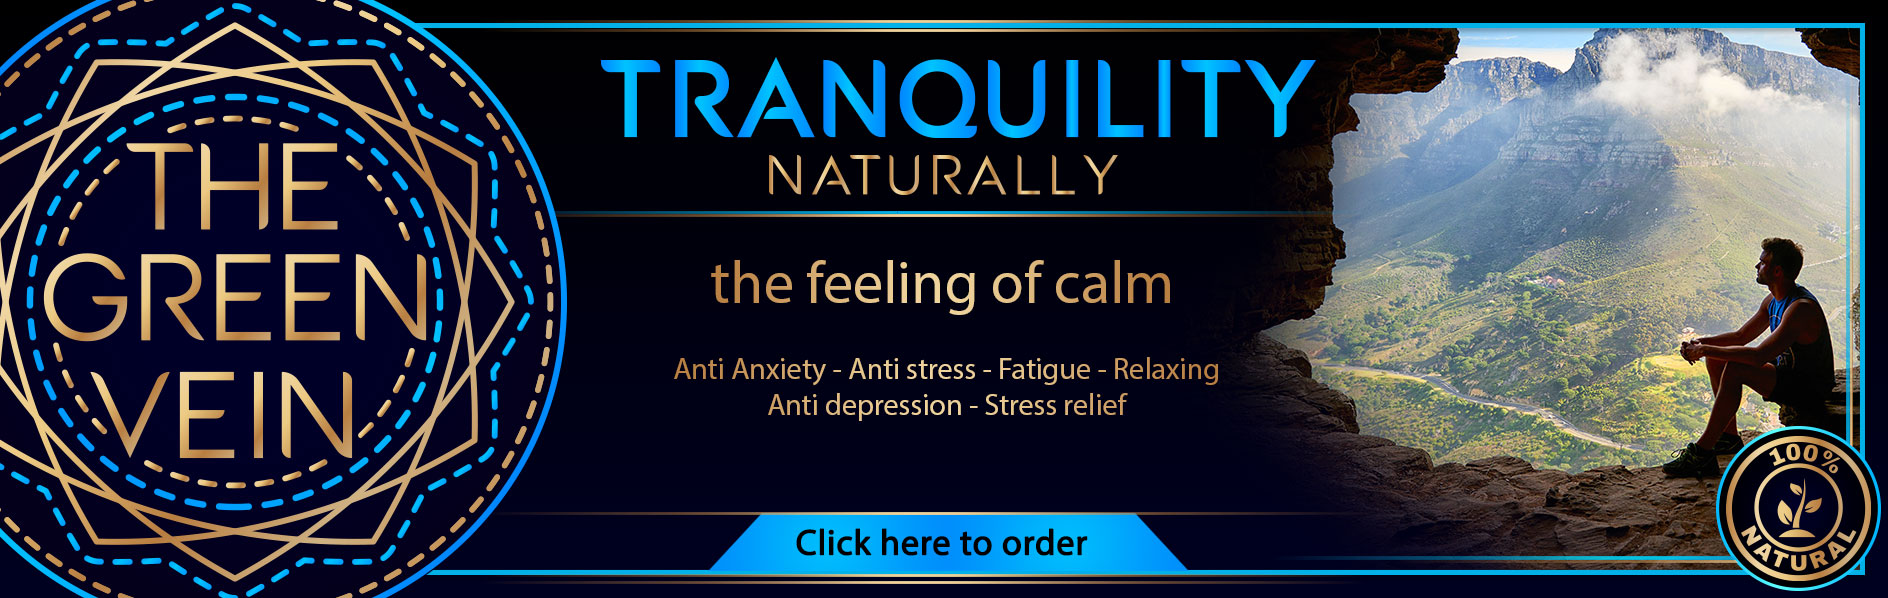 The-Green-Vein-Tranquility-Banner